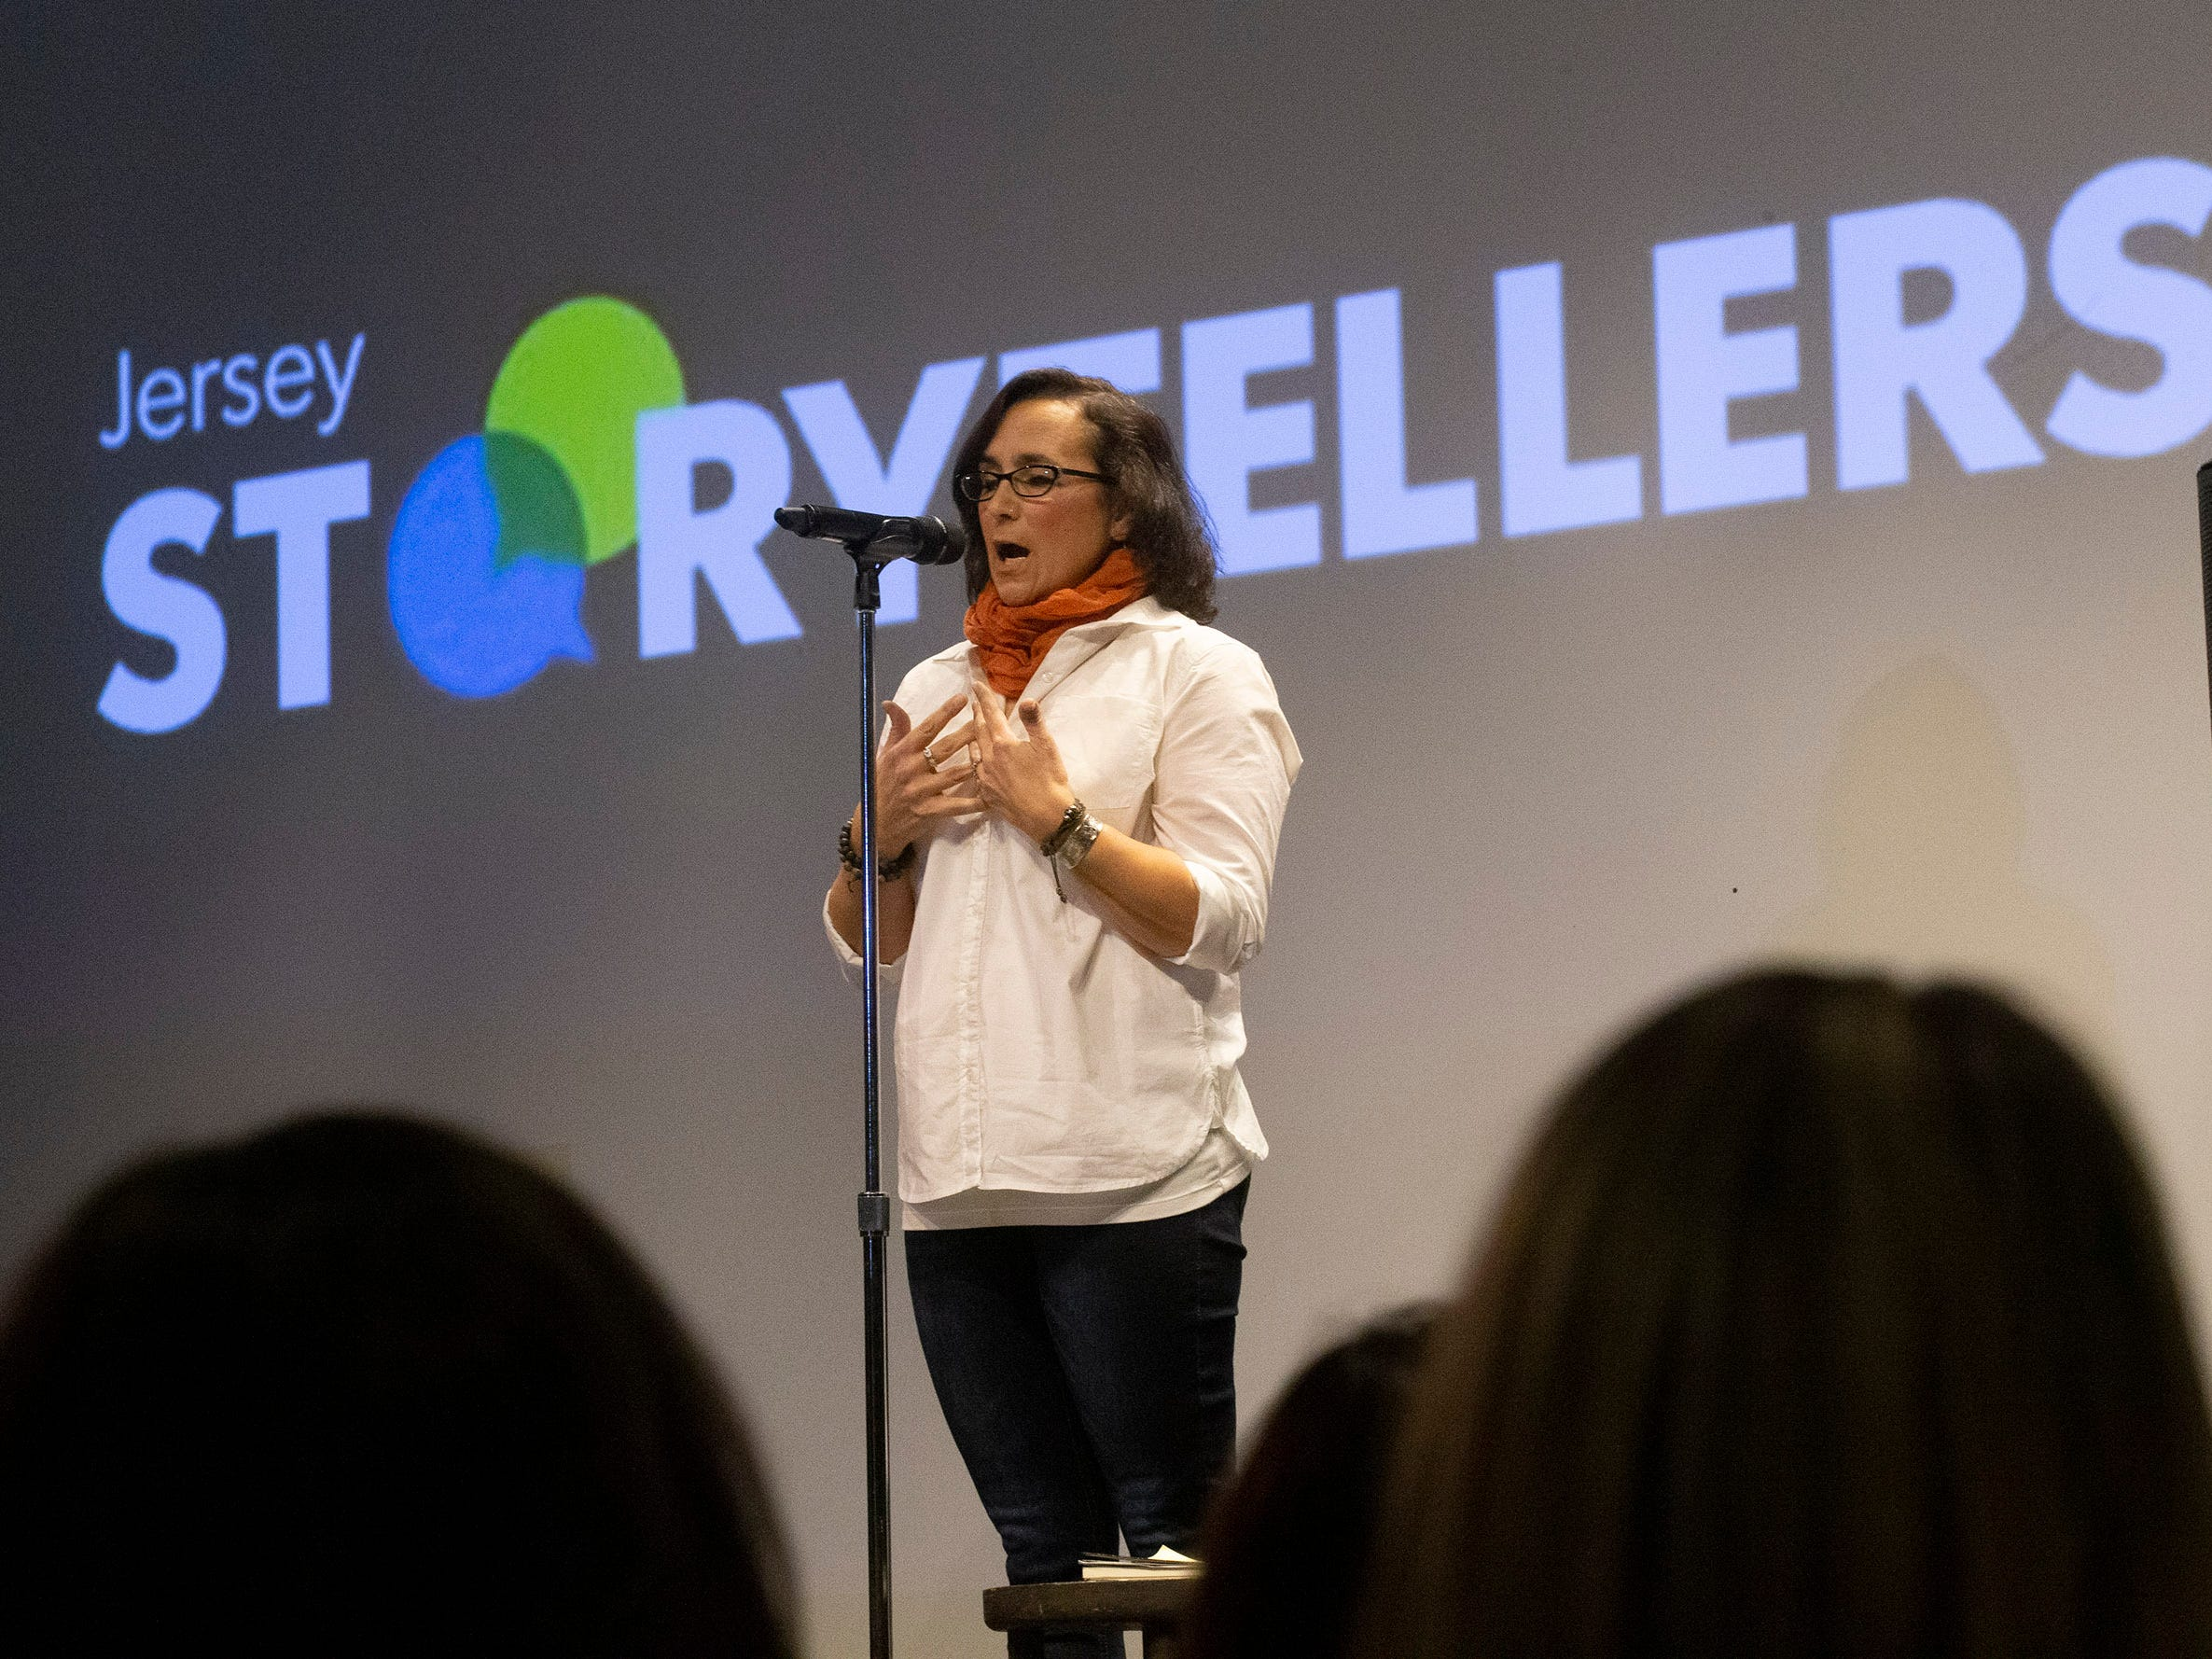 Mona Soliman tells her story. Speakers and crowds alike enjoy the latest version of Storytellers in Asbury Park on February 27, 2019, this night's subject was starting over.